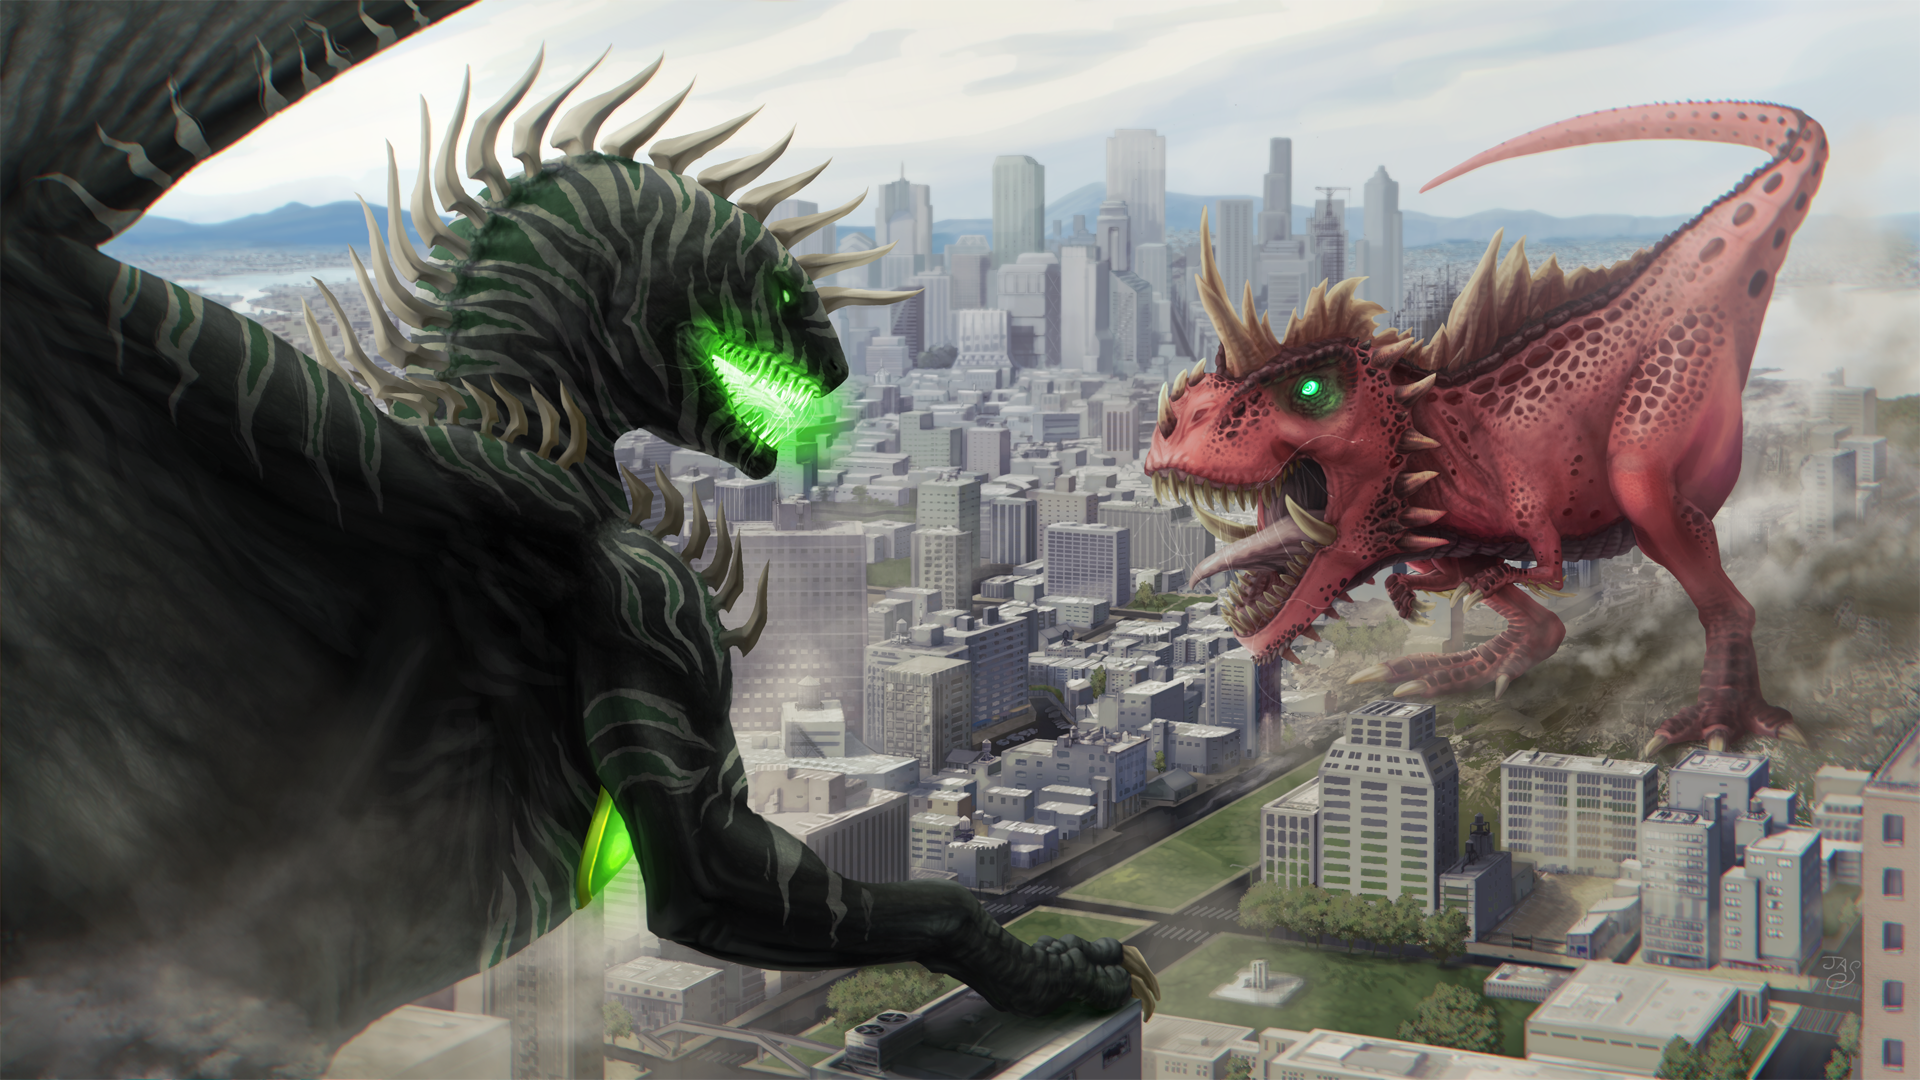 Flarex_vs_Zadala_by_JAS_1080.png